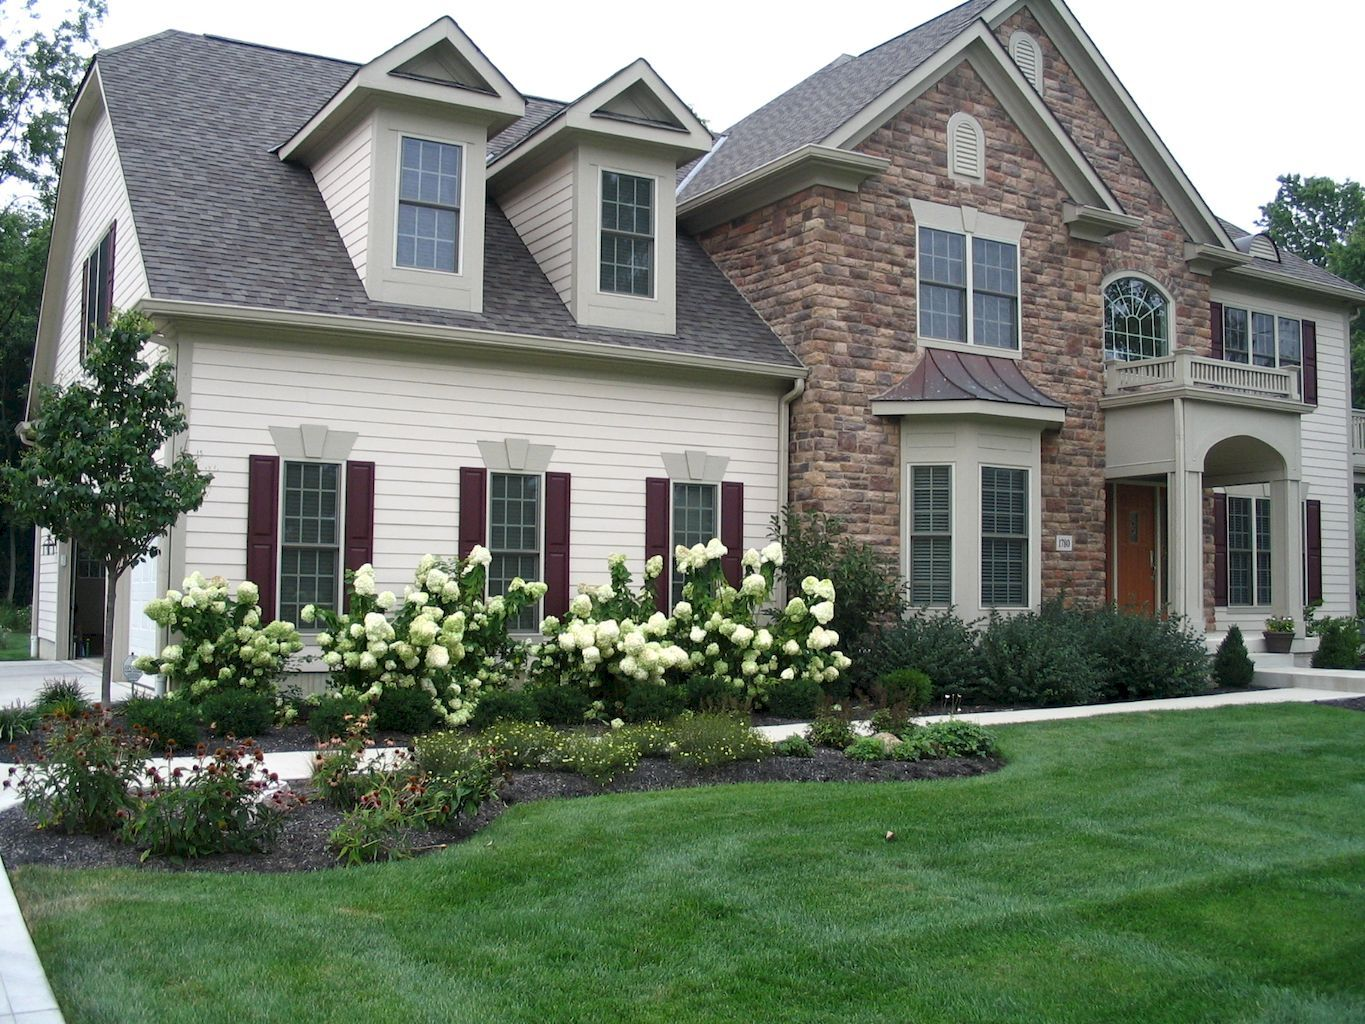 Outdoor Fence Landscaping Ideas 011 For Marvelous House Around Privacy Picket